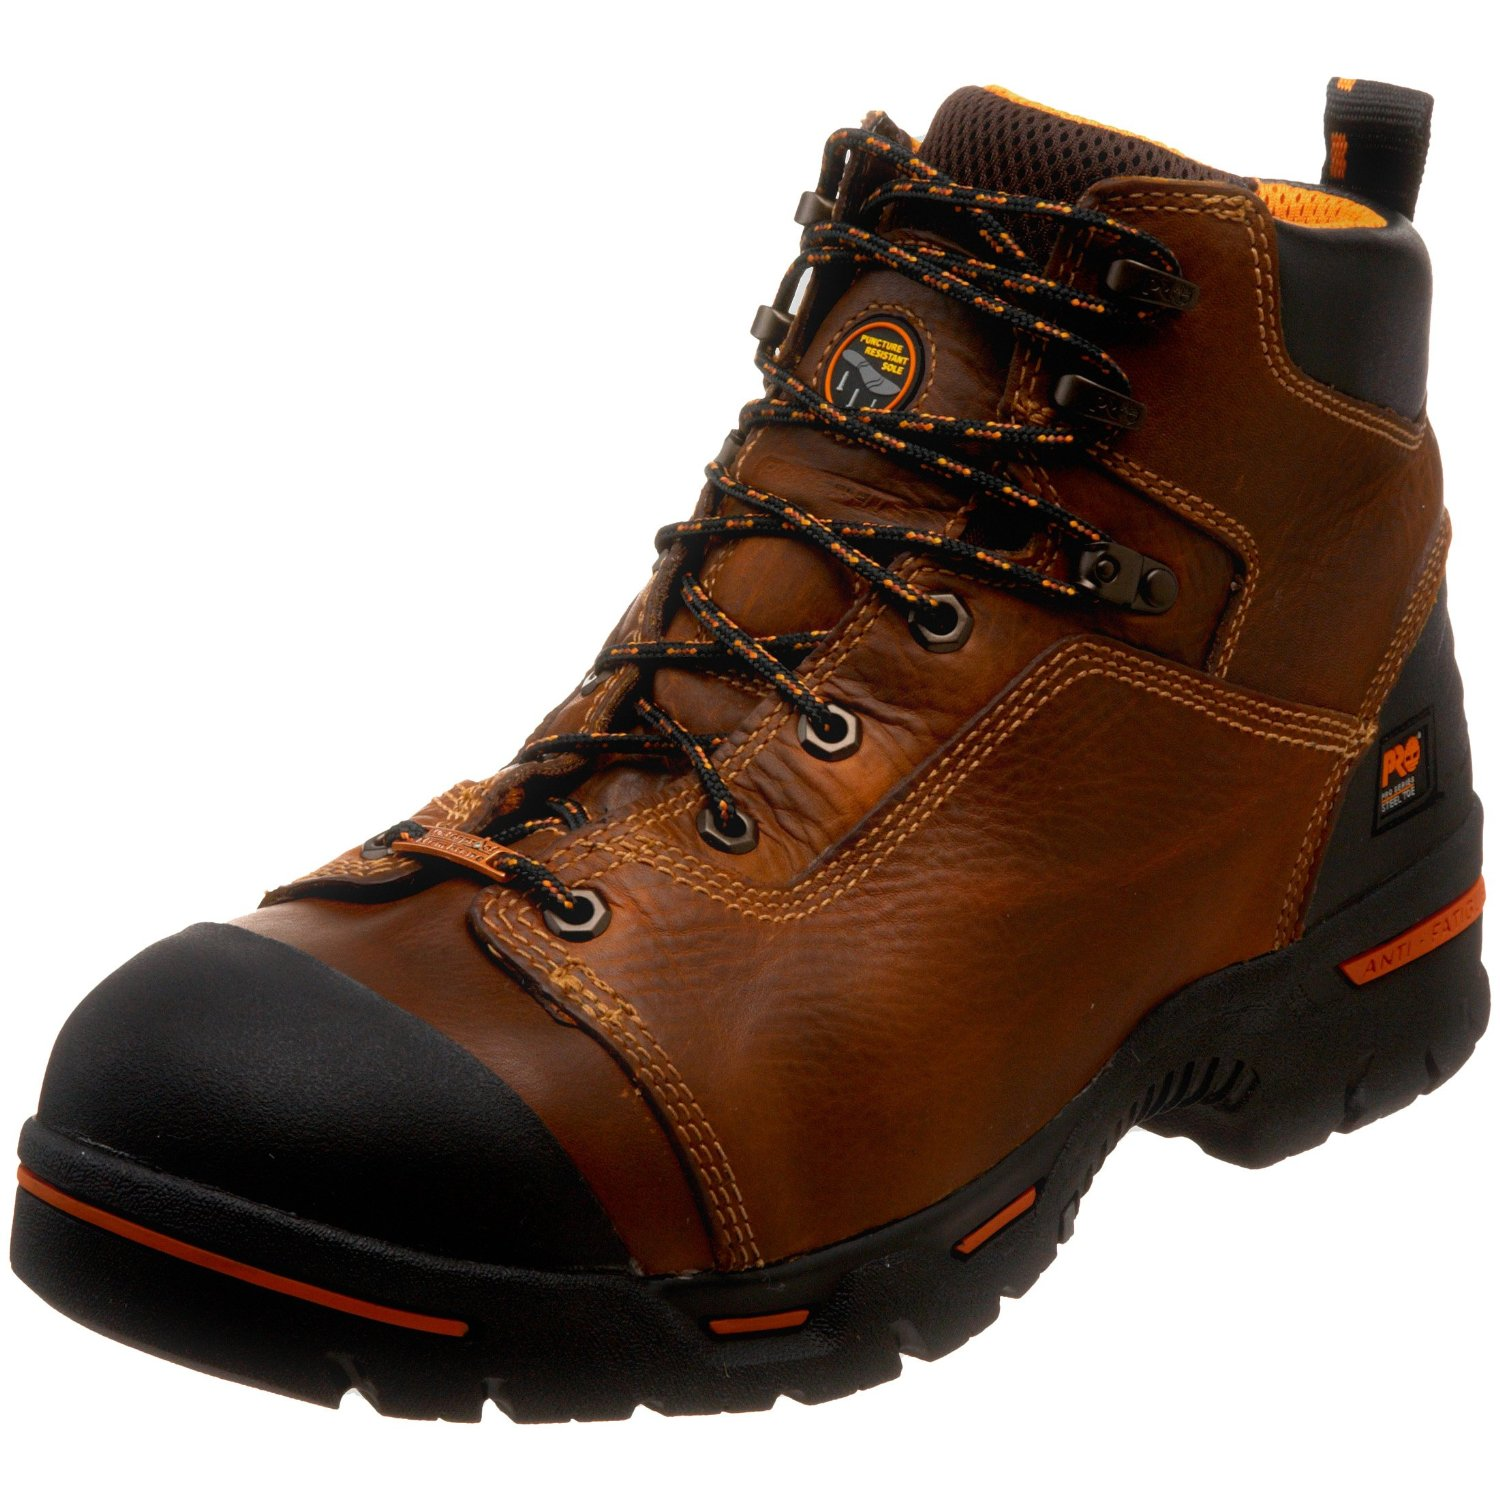 Timberland Boots For Men 2012 Timberland Endu...